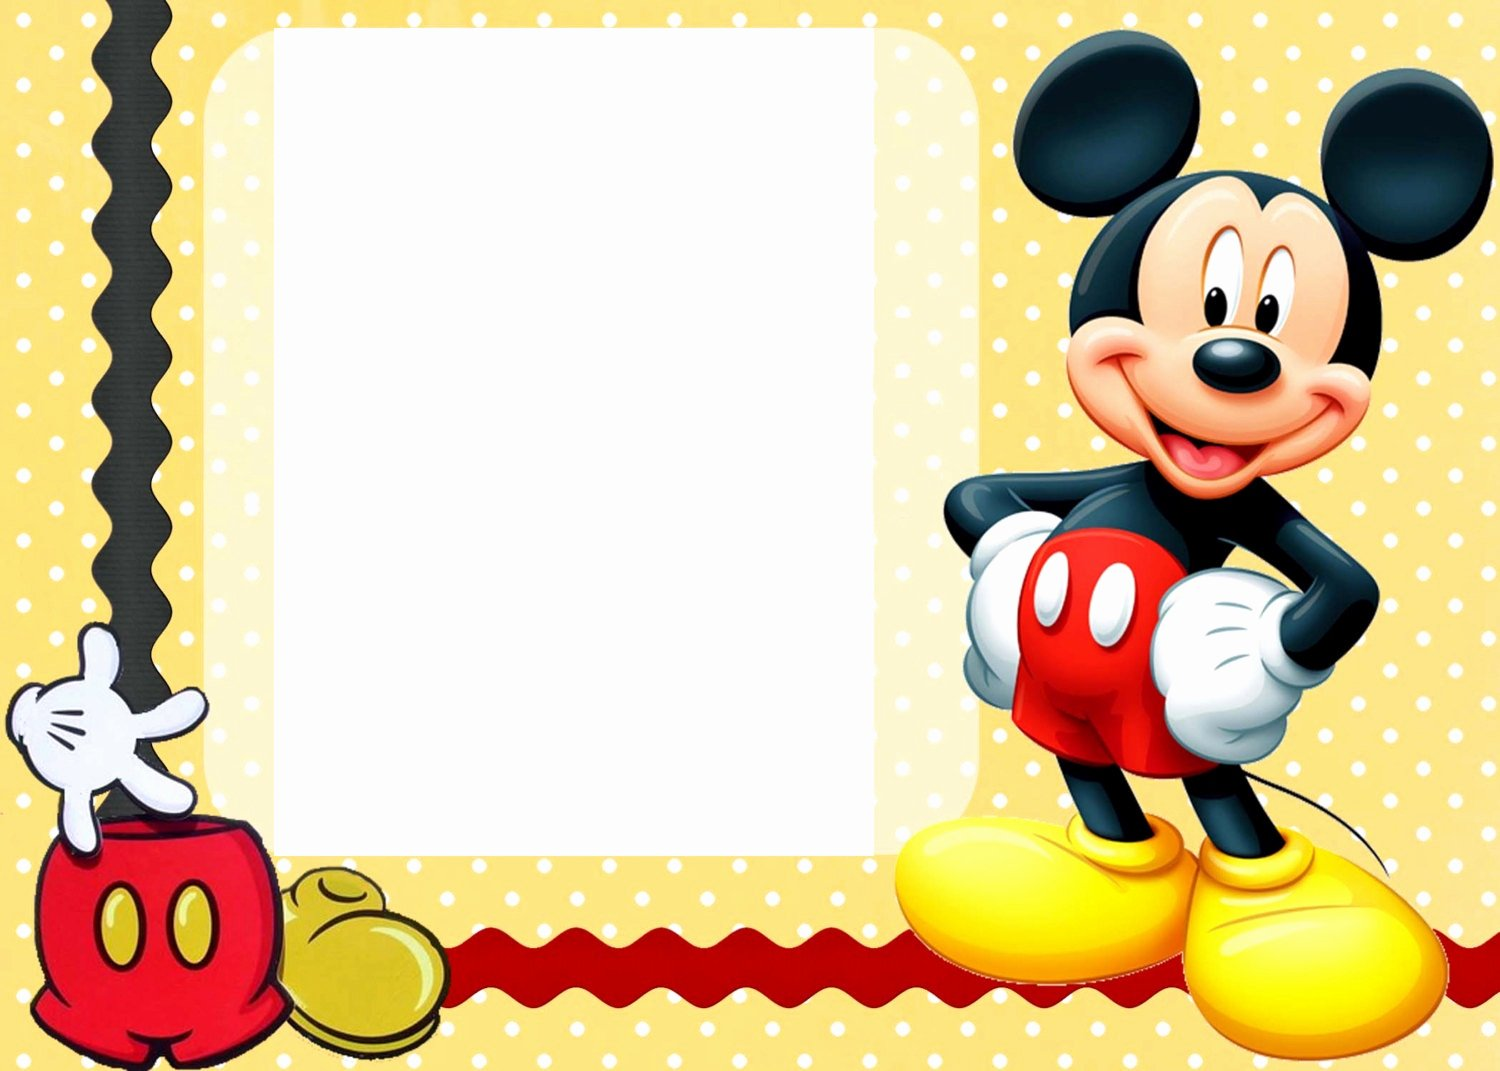 Mickey Mouse Invitation Card New Free Printable Mickey Mouse Birthday Cards